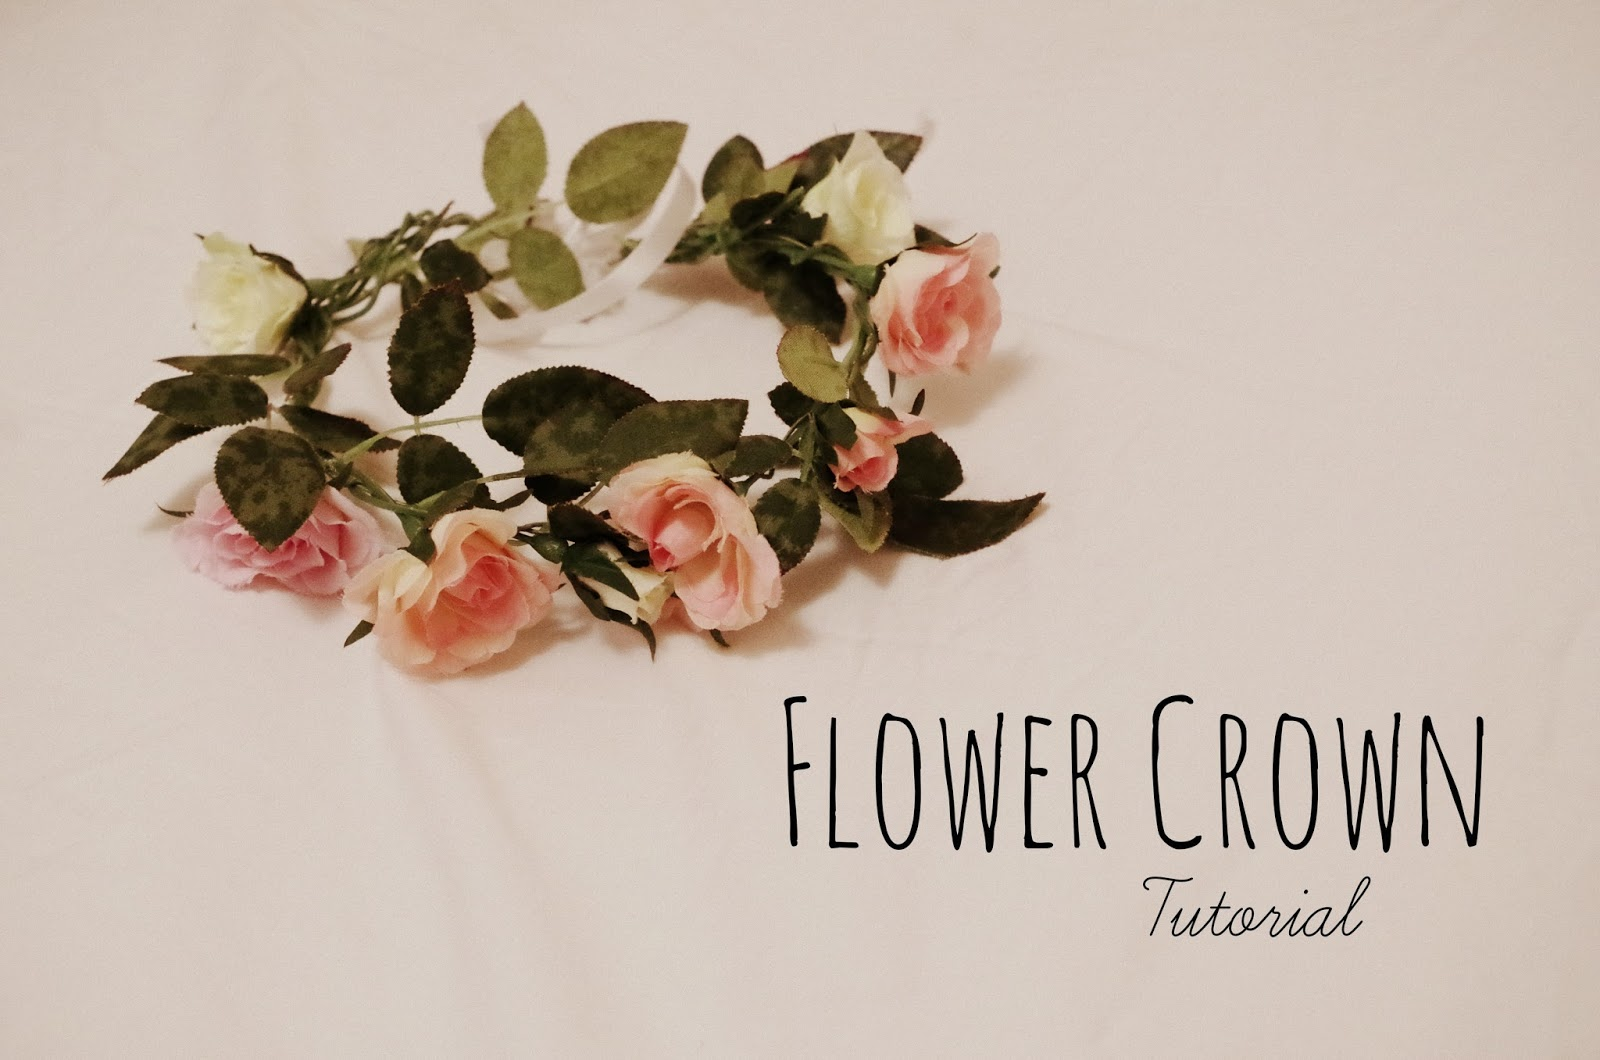 Tumblr Flower Crown Quotes Flower Crown Tumblr Quotes Imgkid